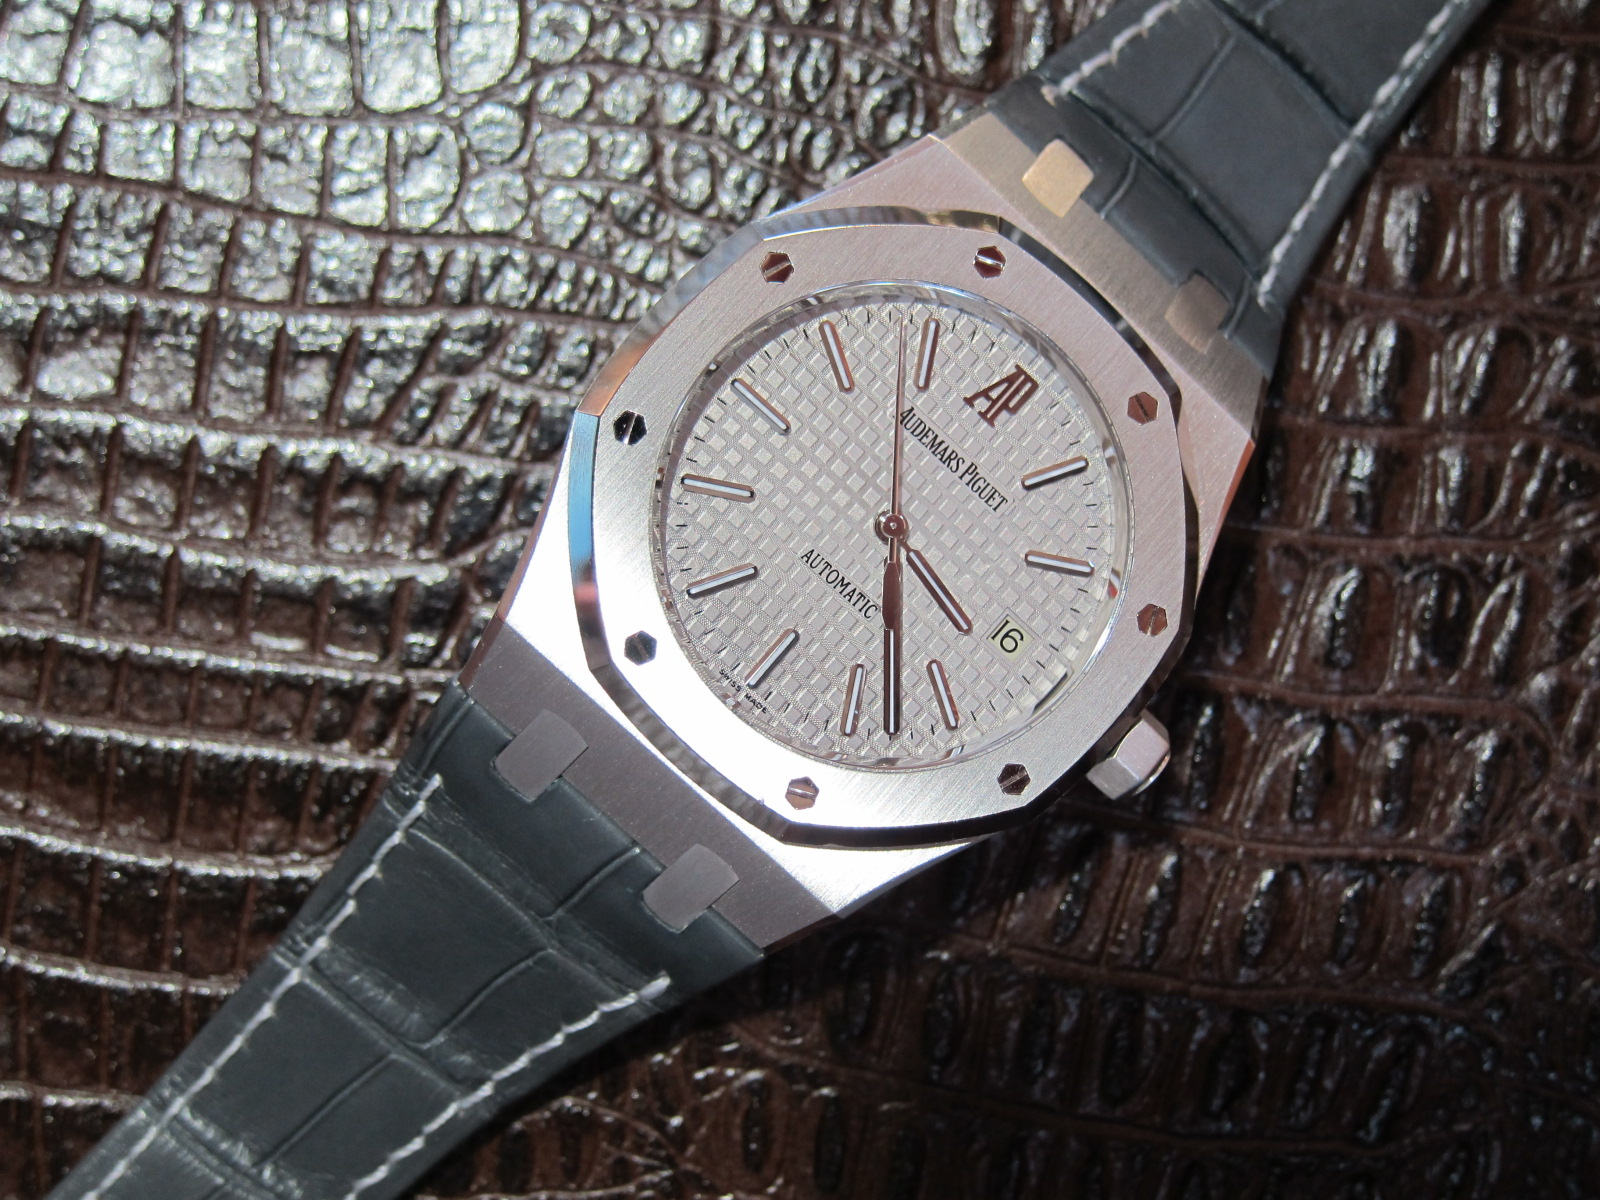 39mm white gold limited edition